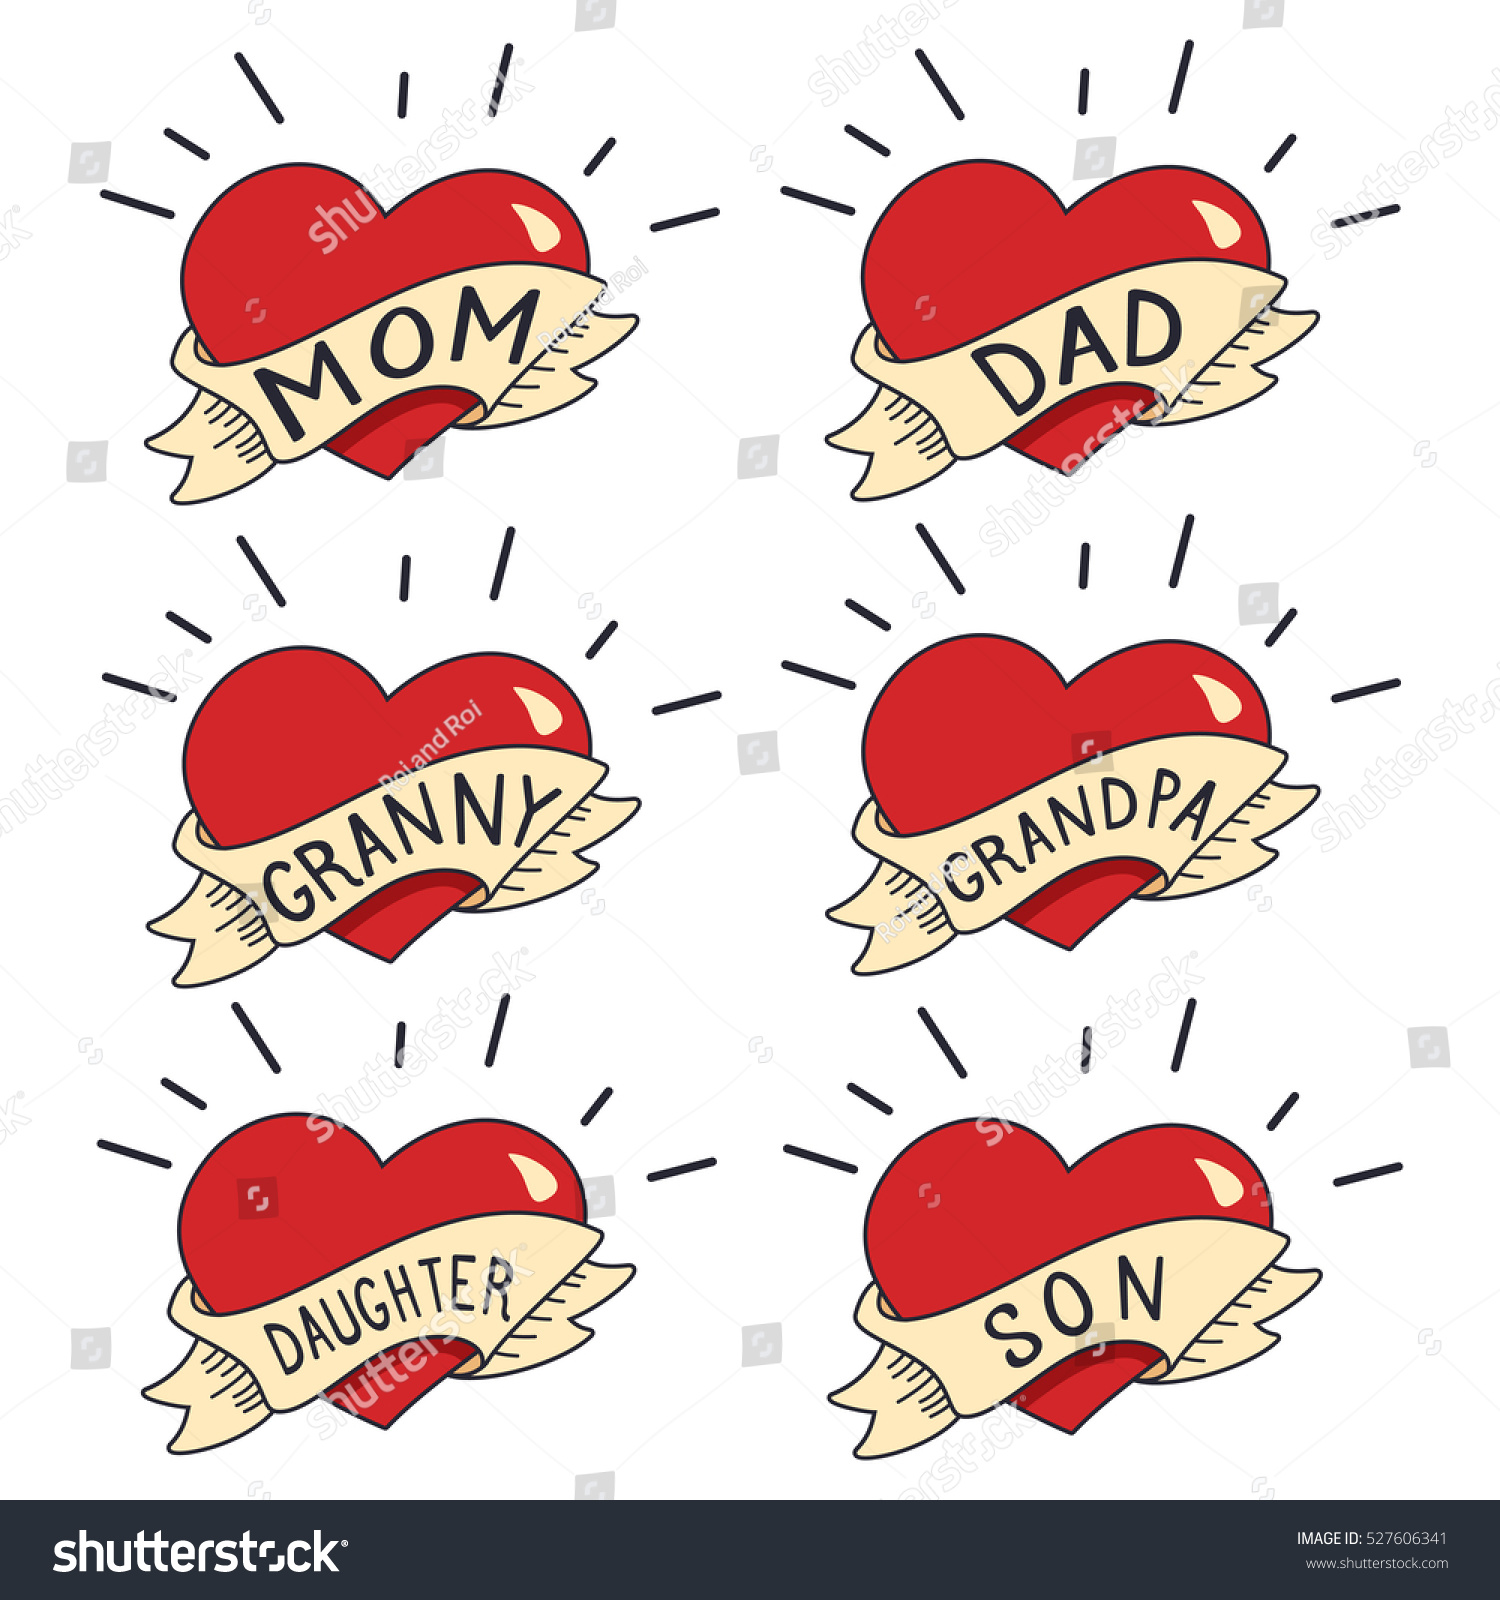 Heart And Mom Dad Tattoo: Old School Tattoo Vector Set Isolated Stock Vector